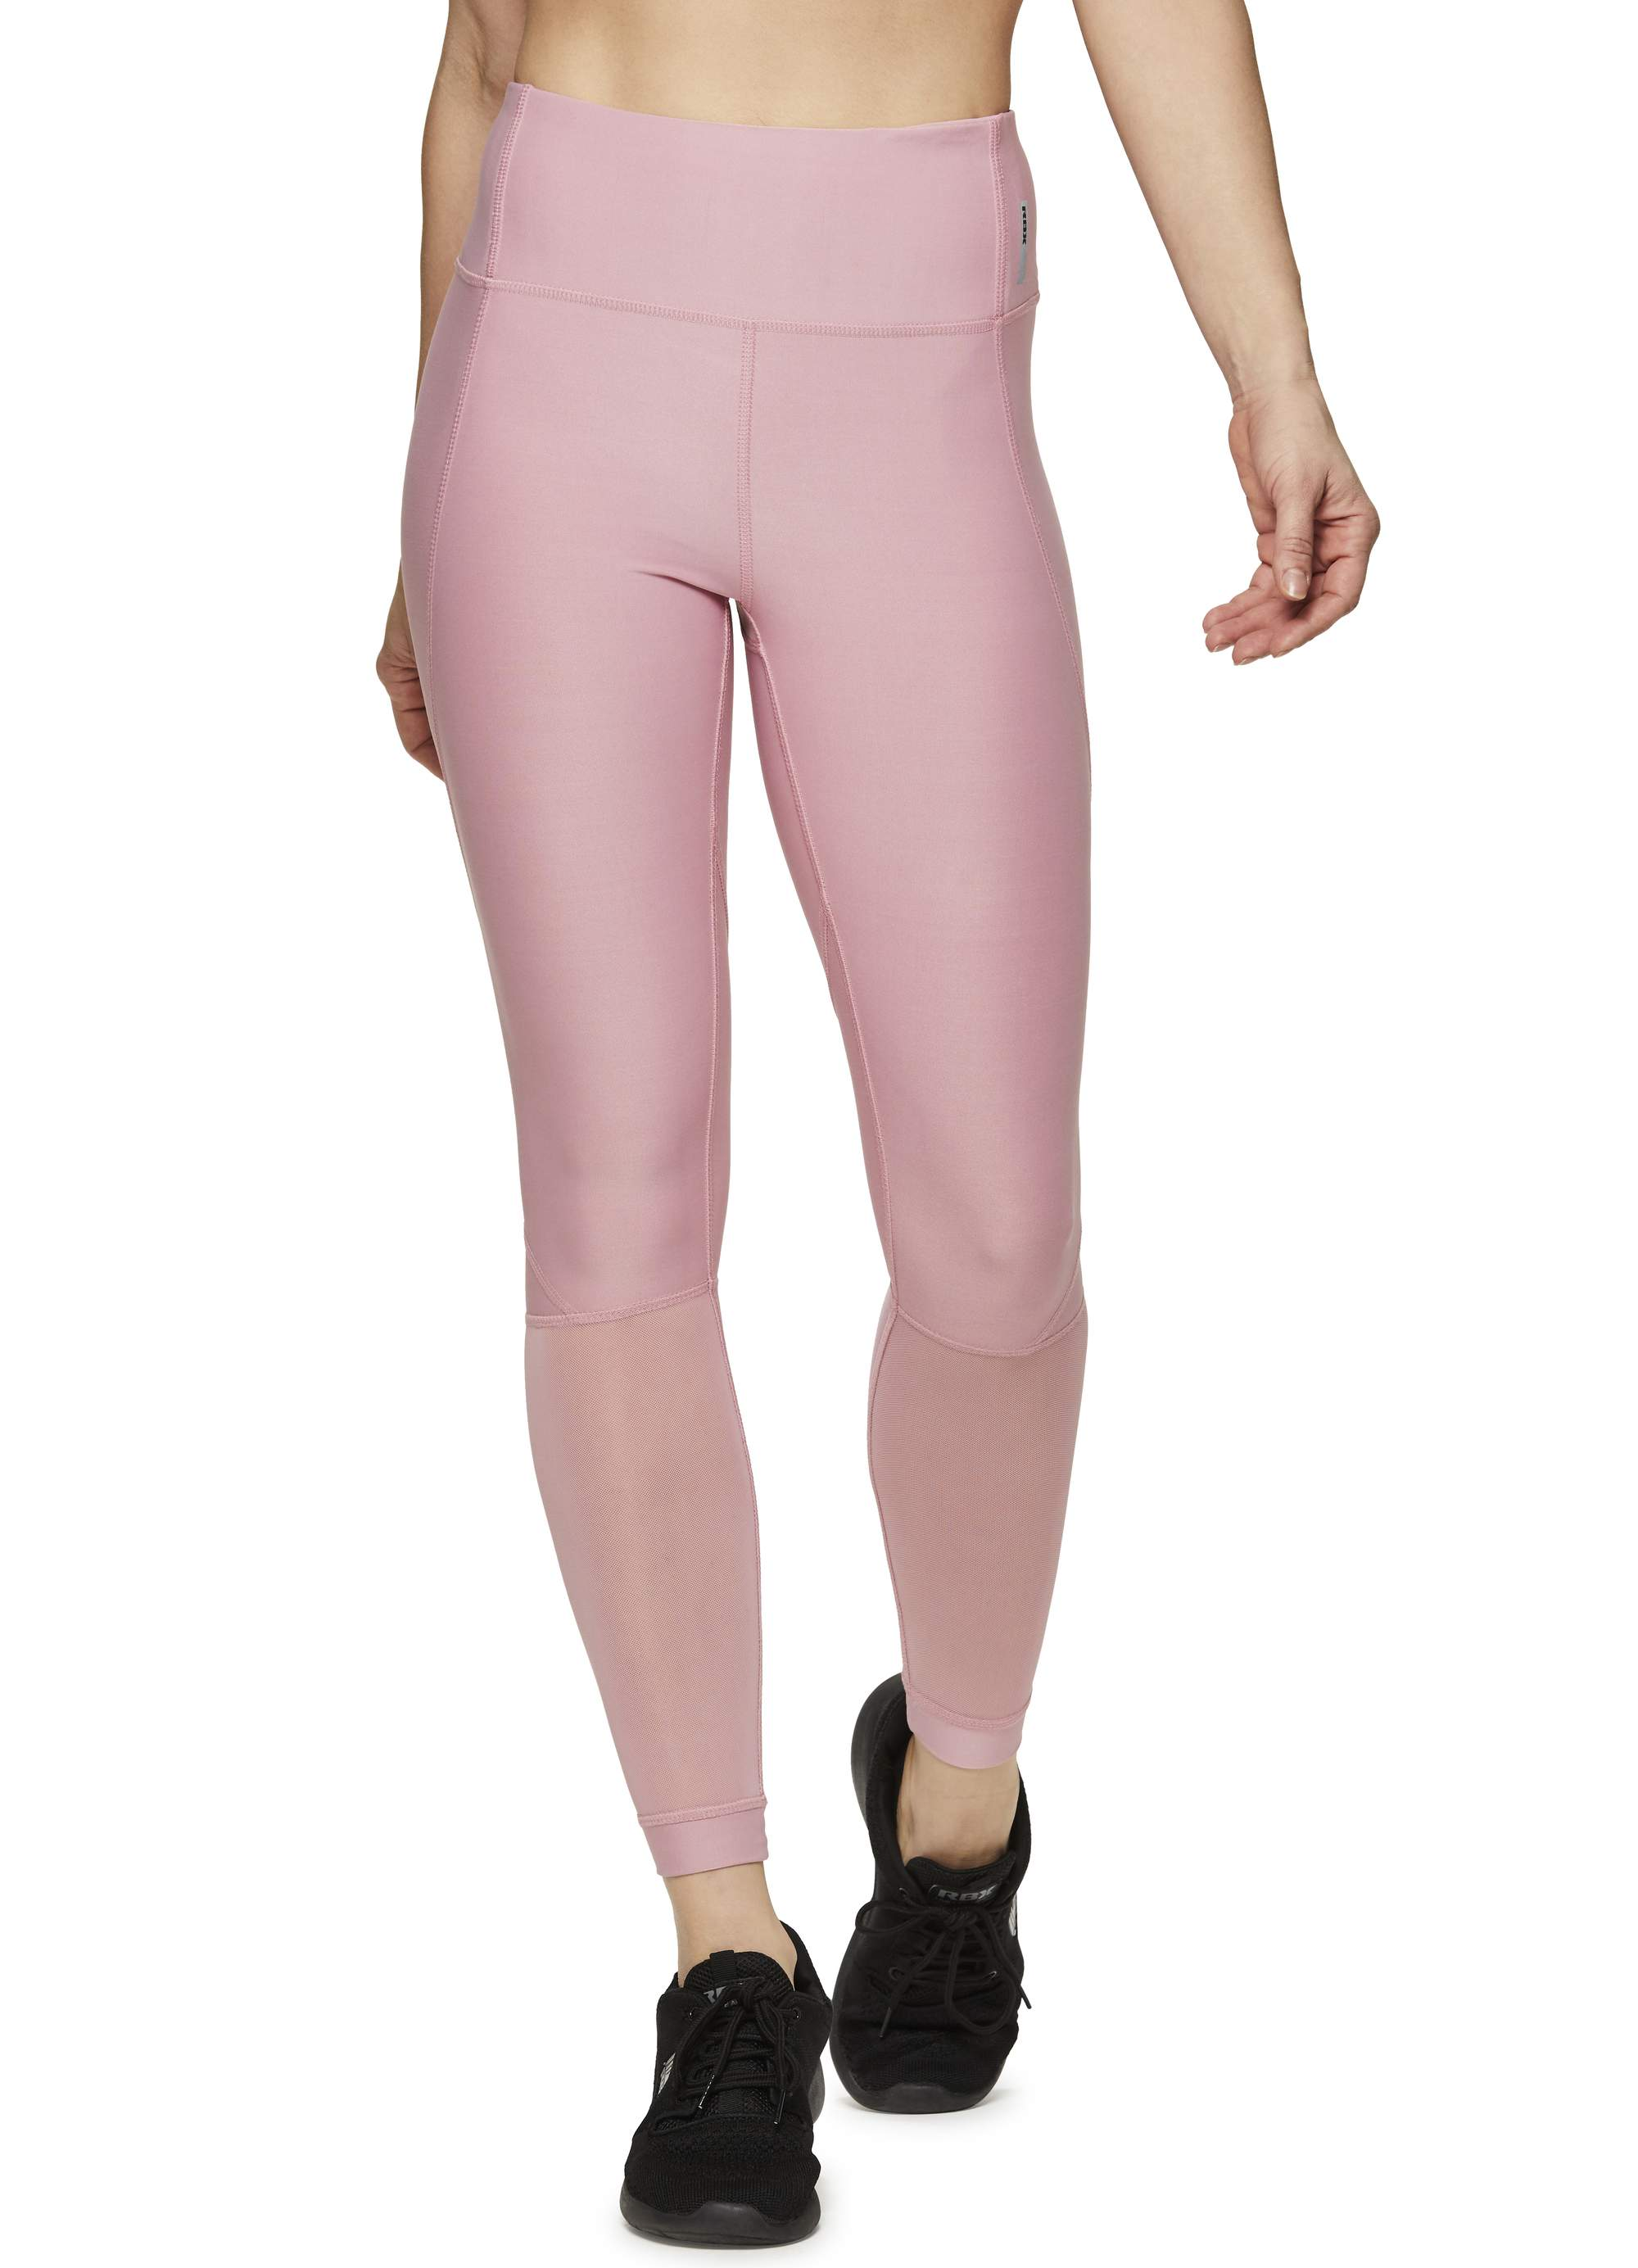 Women's Active 7/8 ankle length legging